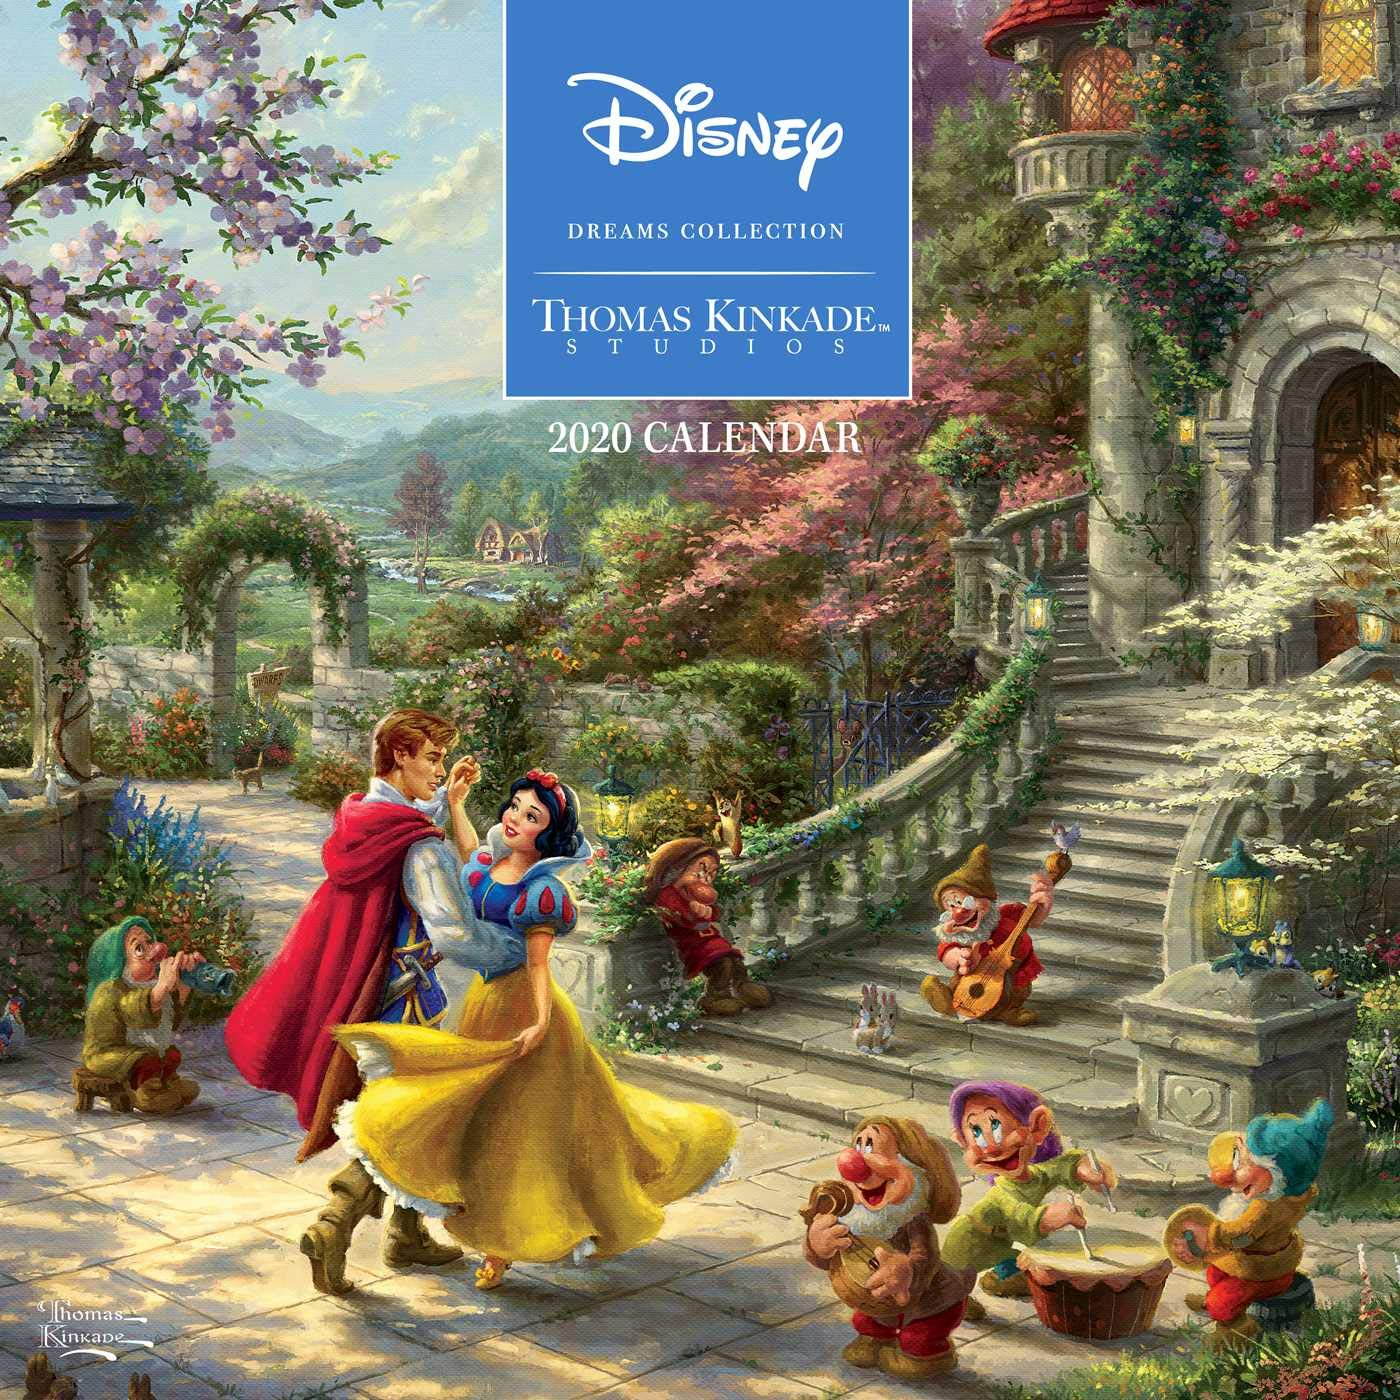 Disney Calendar 2020 Amazon.com: Thomas Kinkade Studios: Disney Dreams Collection 2020